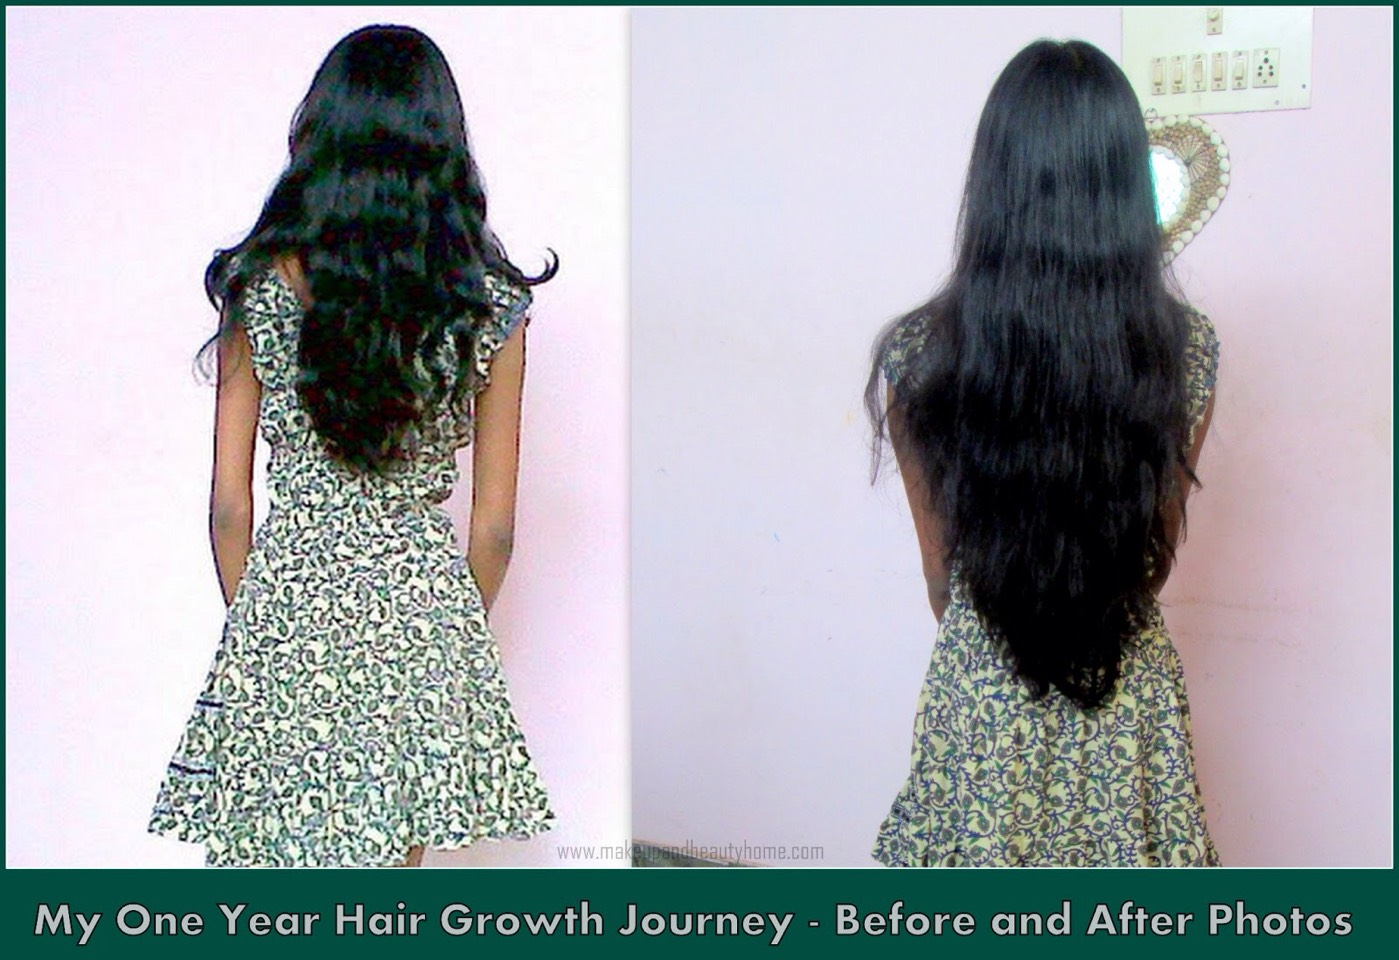 You should see results in a week! Depending on the time your hair takes to grow